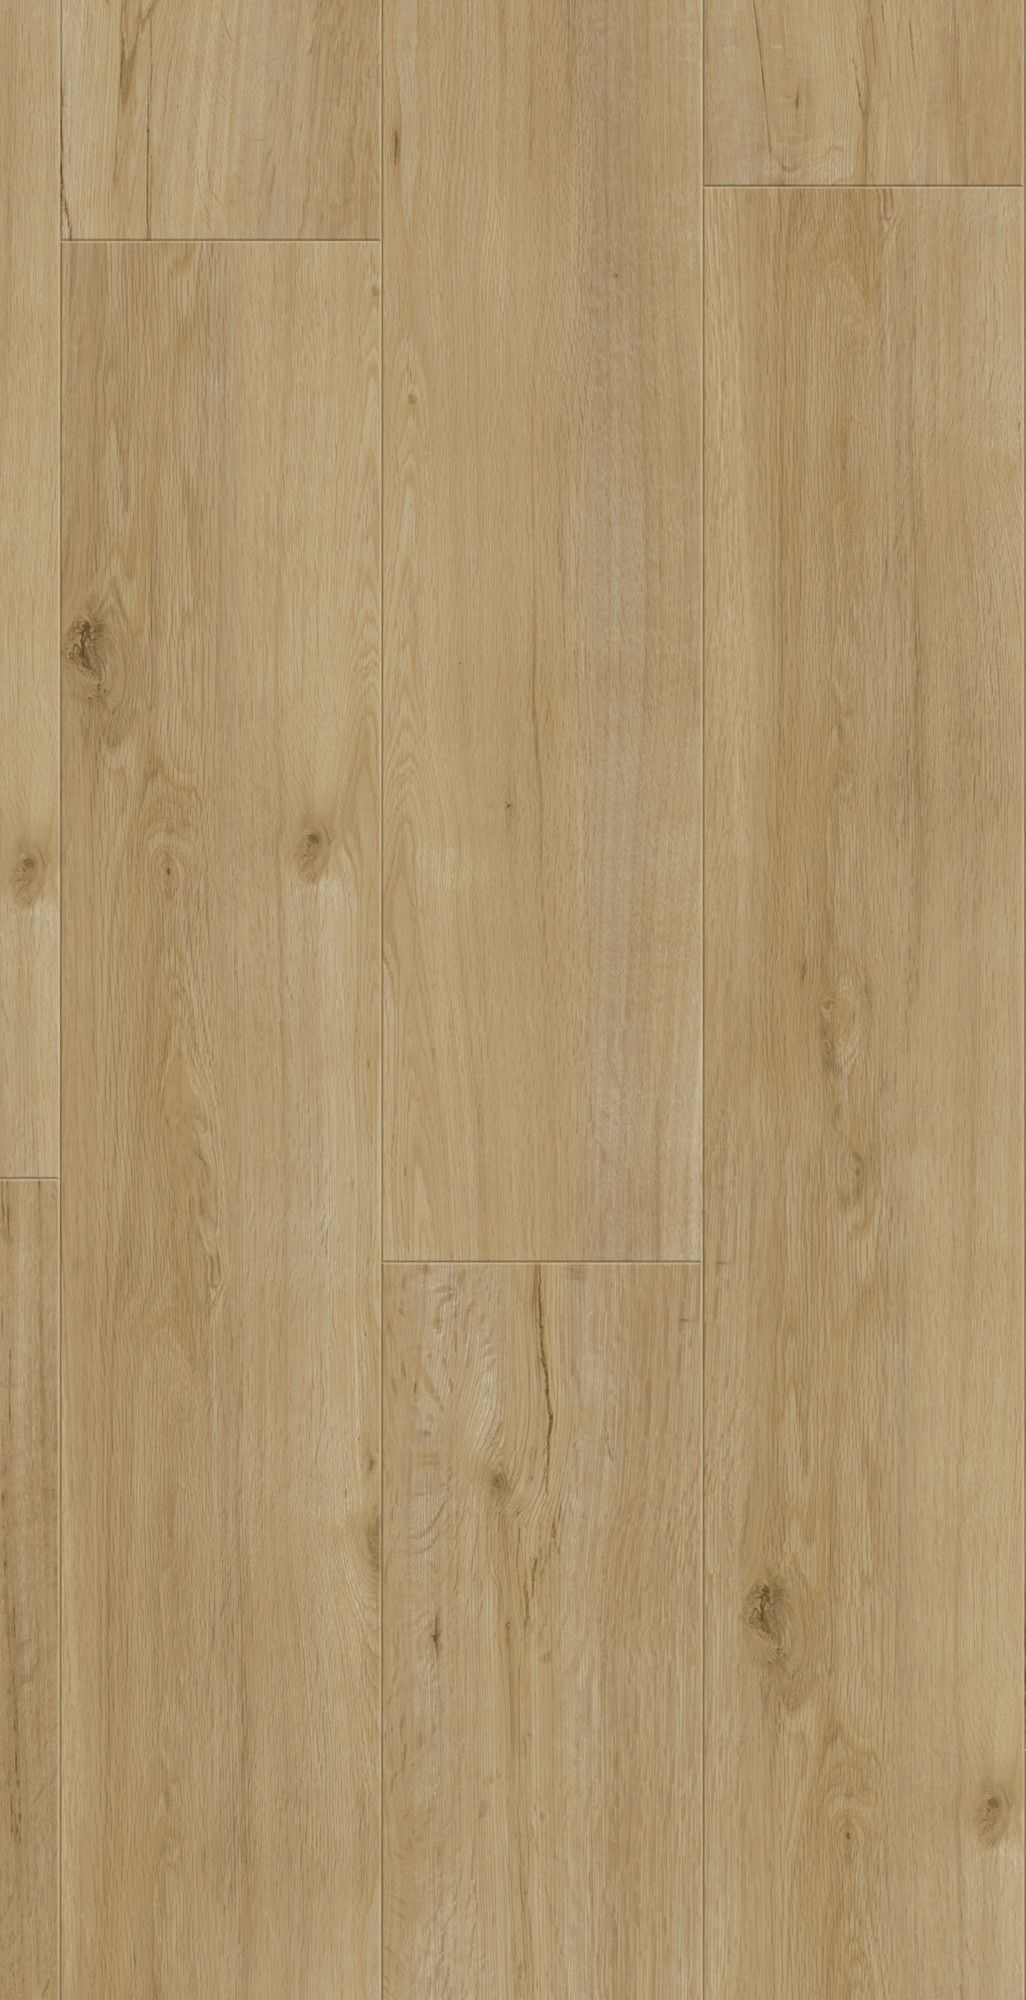 Gerflor Senso Clic Premium 0837 Columbia Chene Naturel Lame Pvc Clipsable Revetement Sol Pvc